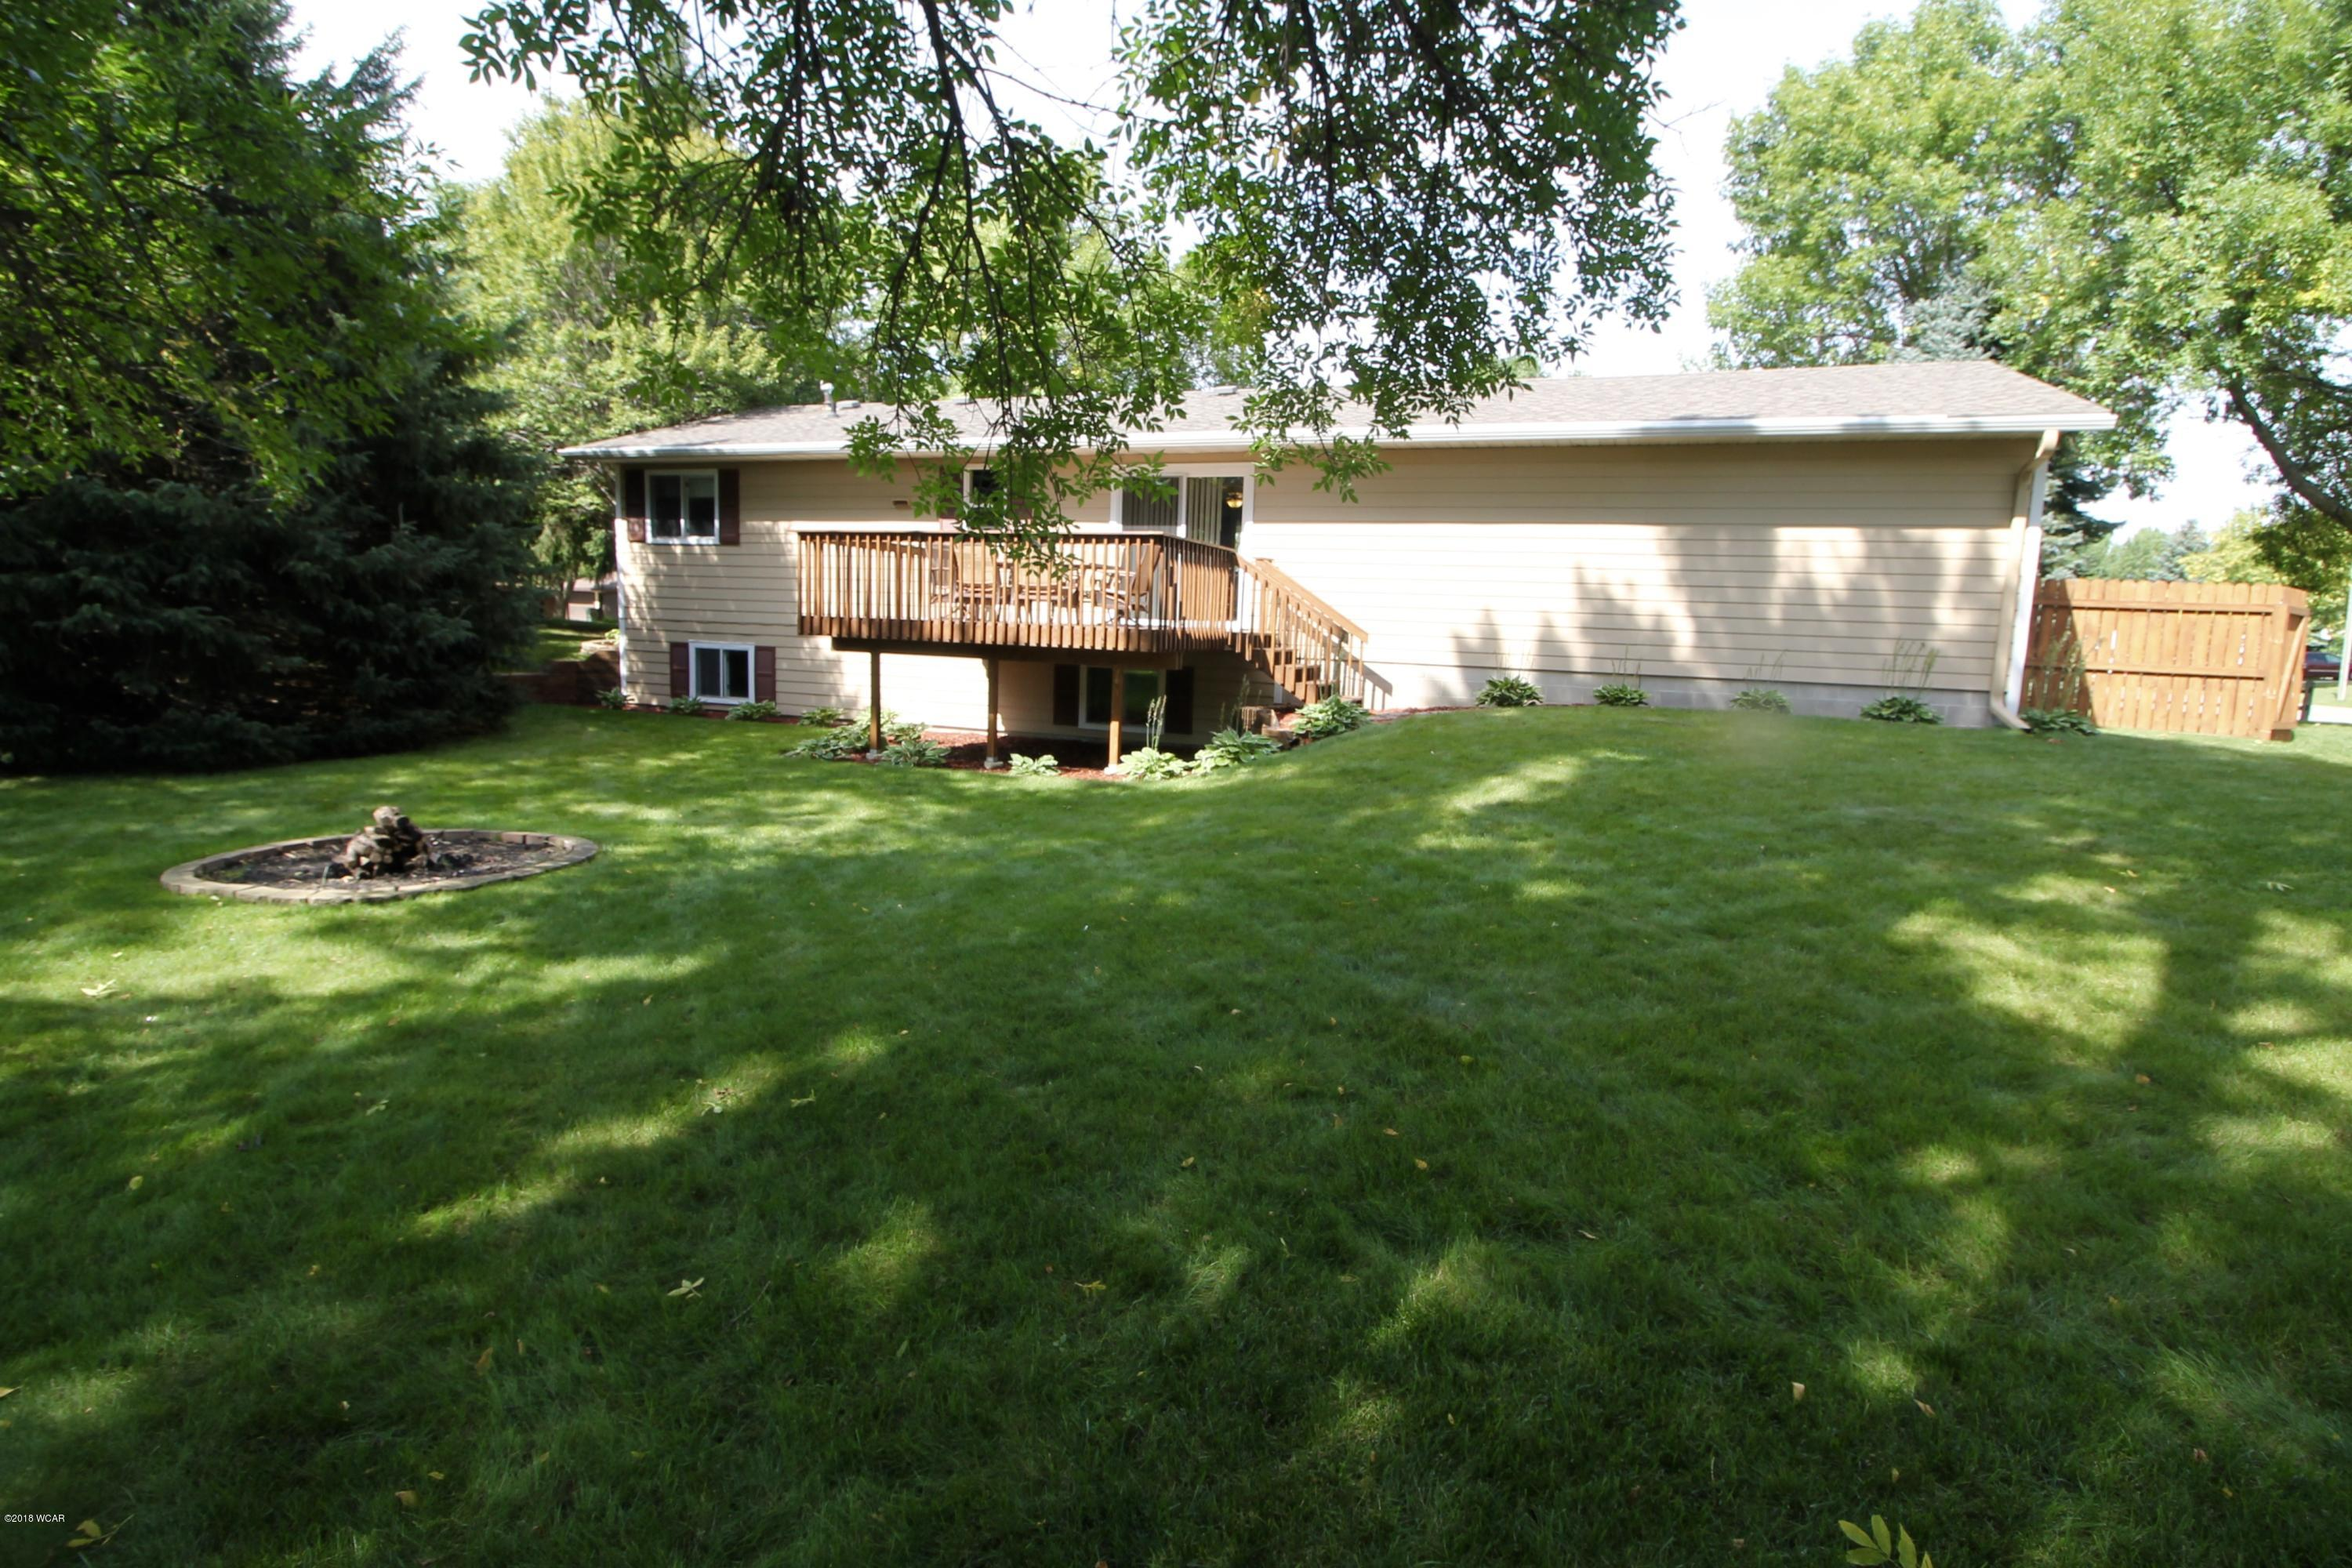 2421 4th Avenue,Willmar,3 Bedrooms Bedrooms,2 BathroomsBathrooms,Single Family,4th Avenue,6032197